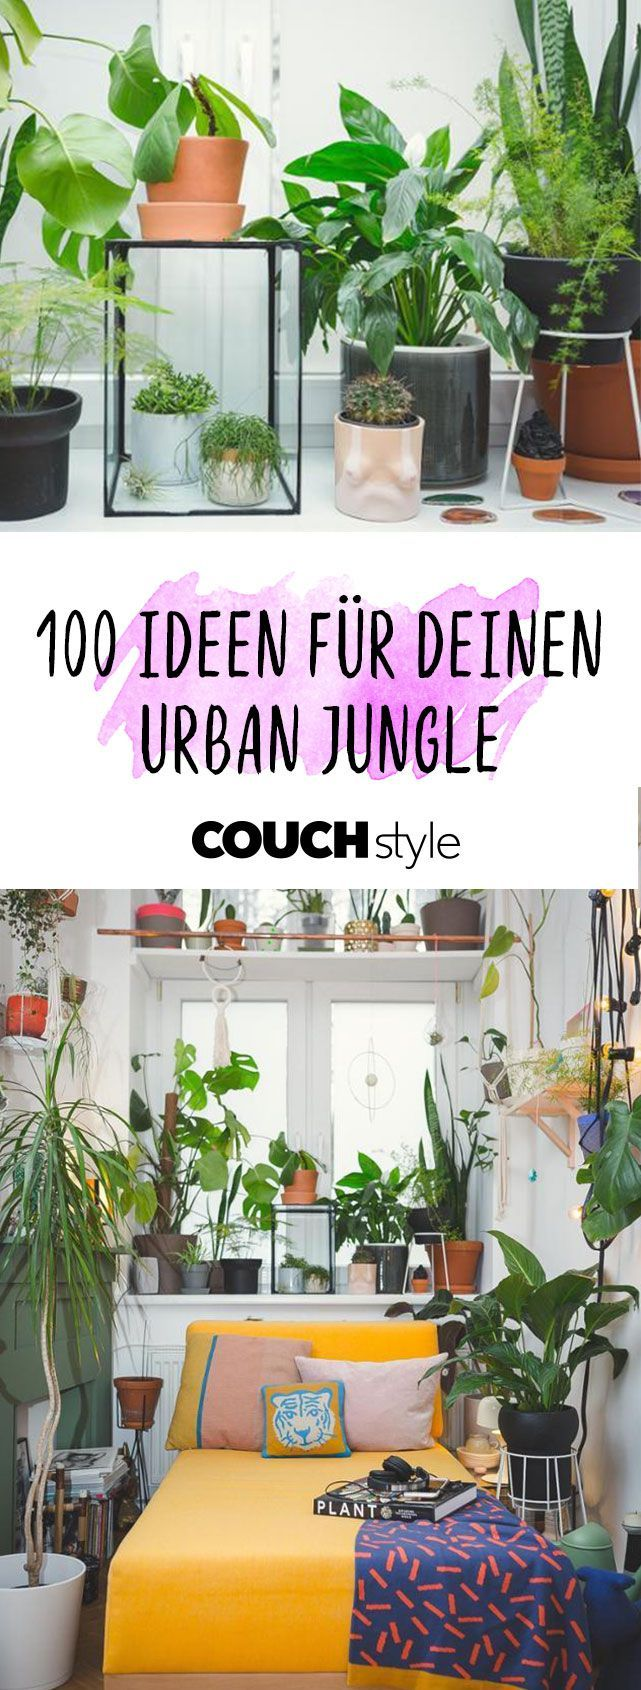 urban jungle • bilder  ideen  urban jungle wohnen mit